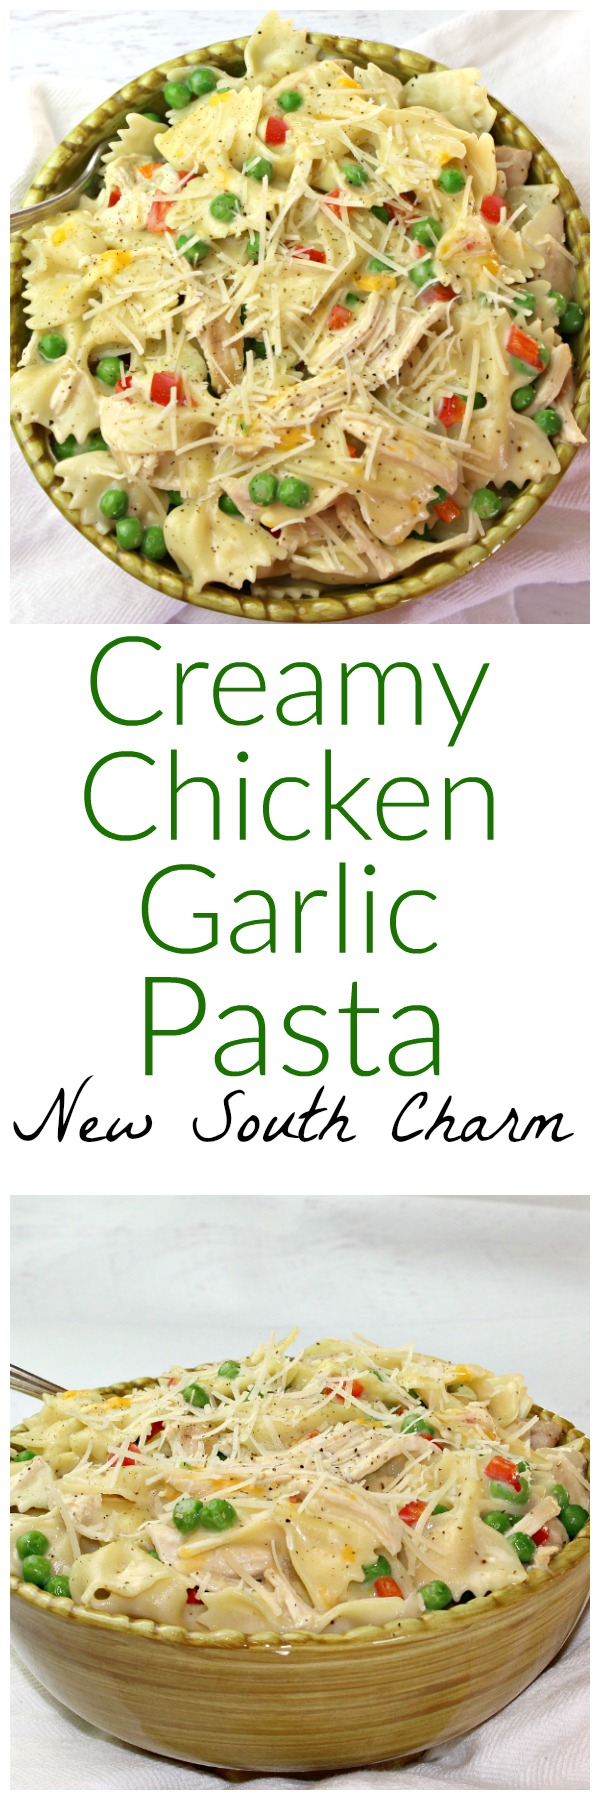 Creamy Chicken Garlic Pasta Is A Recipe That S Easy Enough For A Weeknight But Fancy Enough